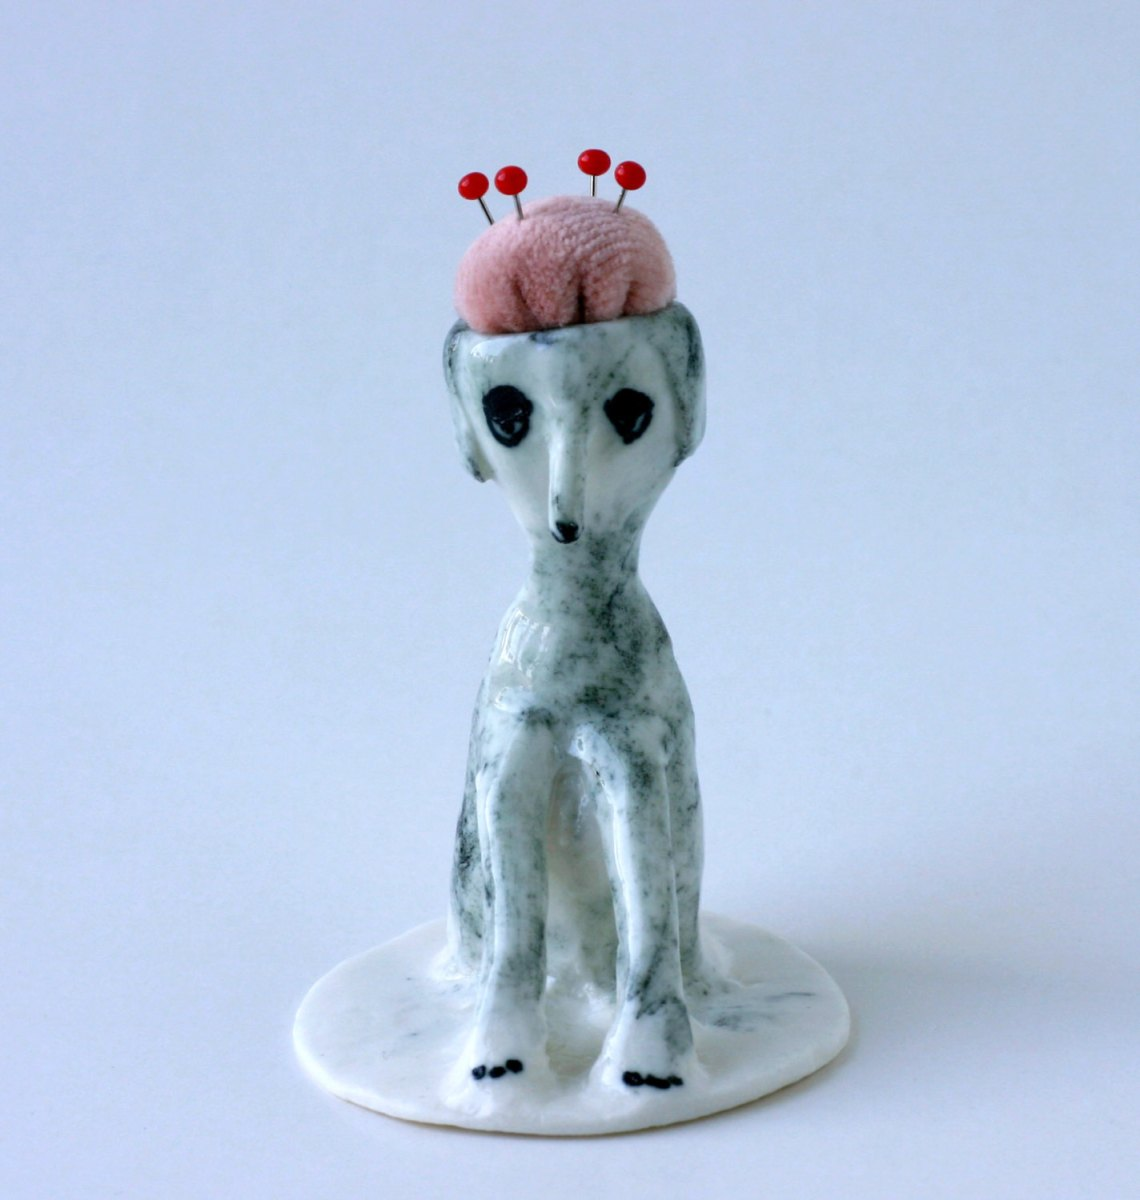 Ceramic Art by Eleonor Bostrom